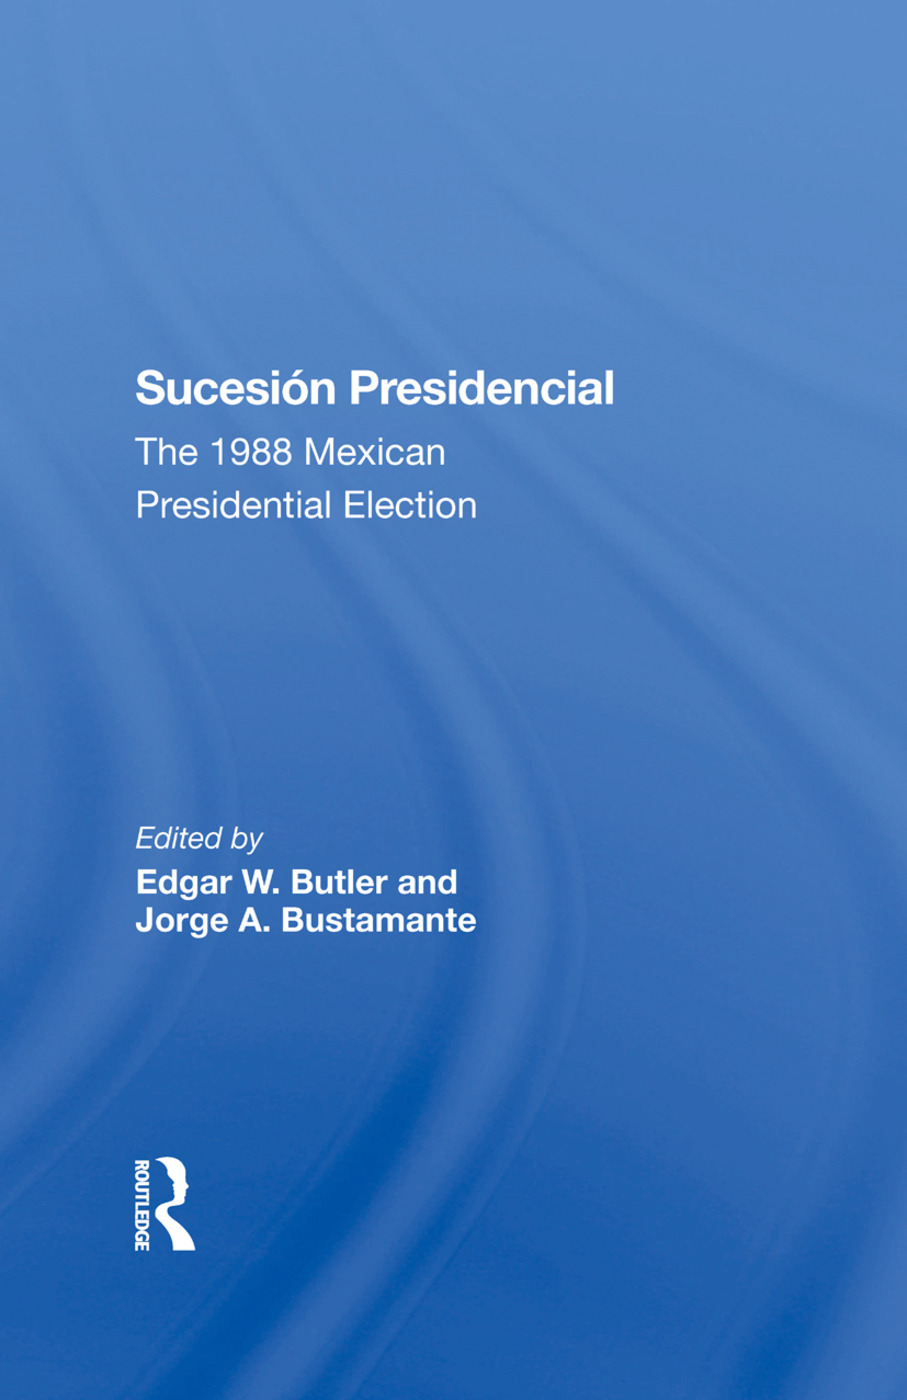 Sucesion Presidencial: The 1988 Mexican Presidential Election, 1st Edition (Hardback) book cover